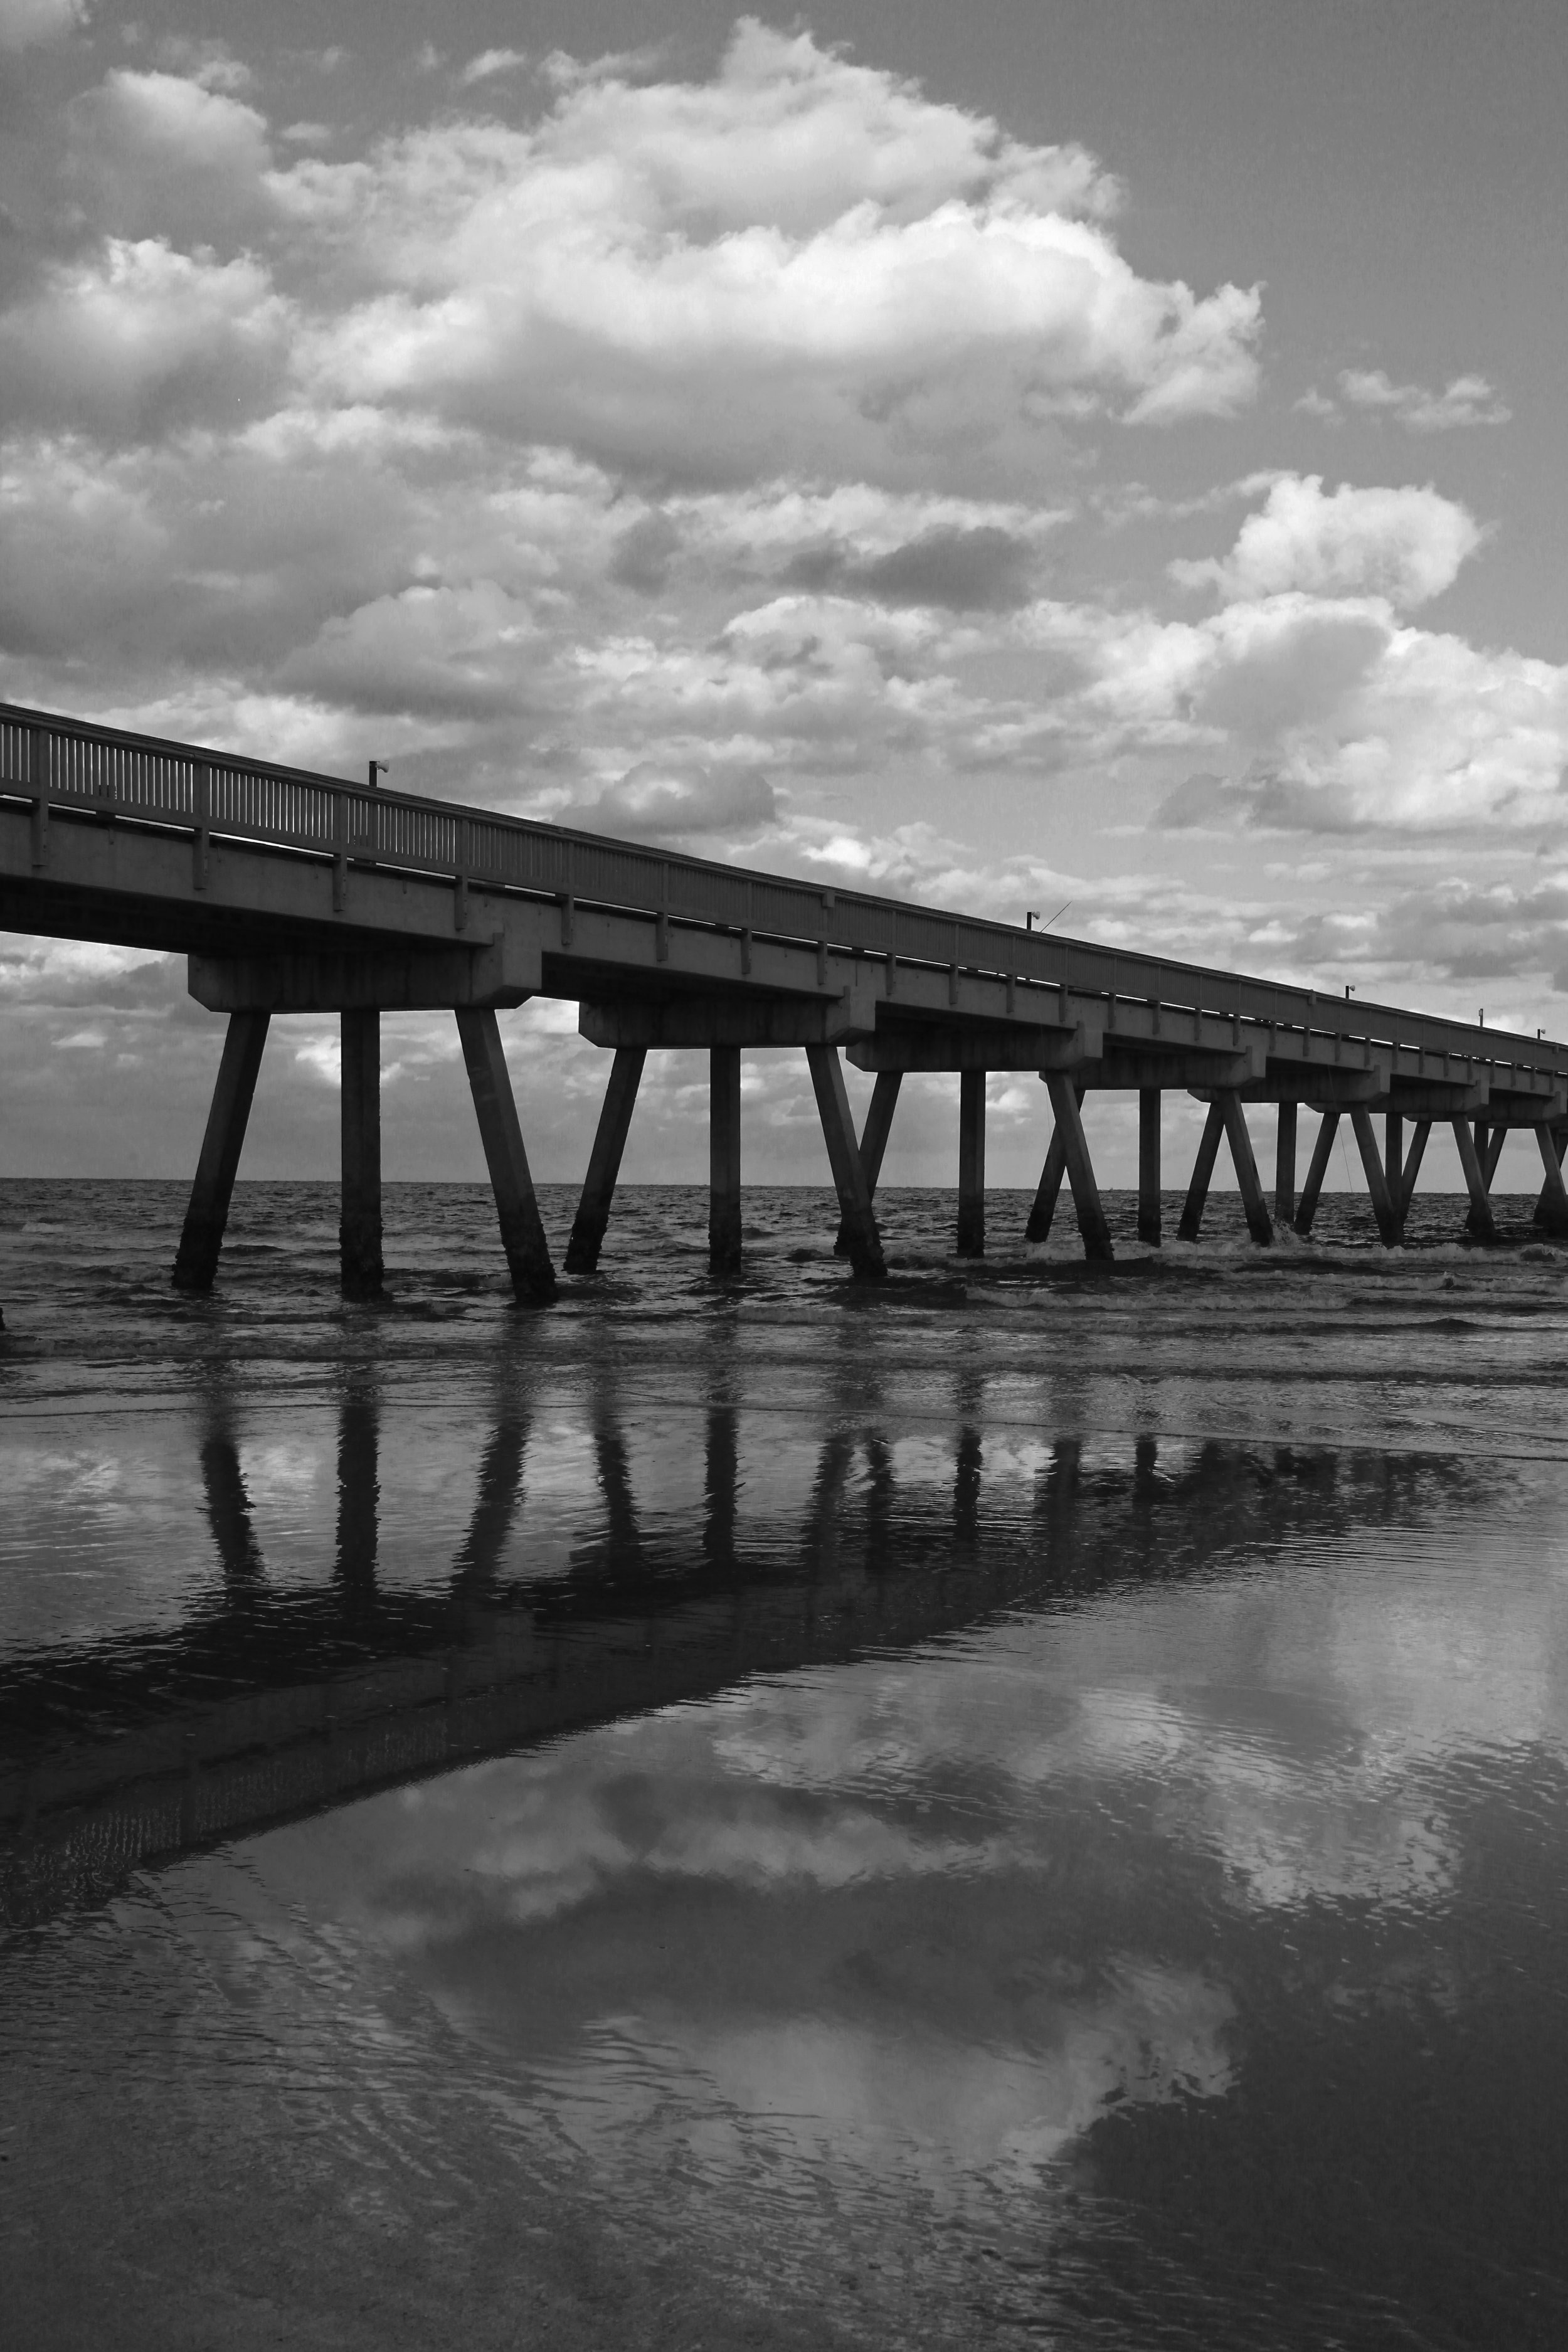 45 Pier & Clouds Reflected BW 0684.jpg